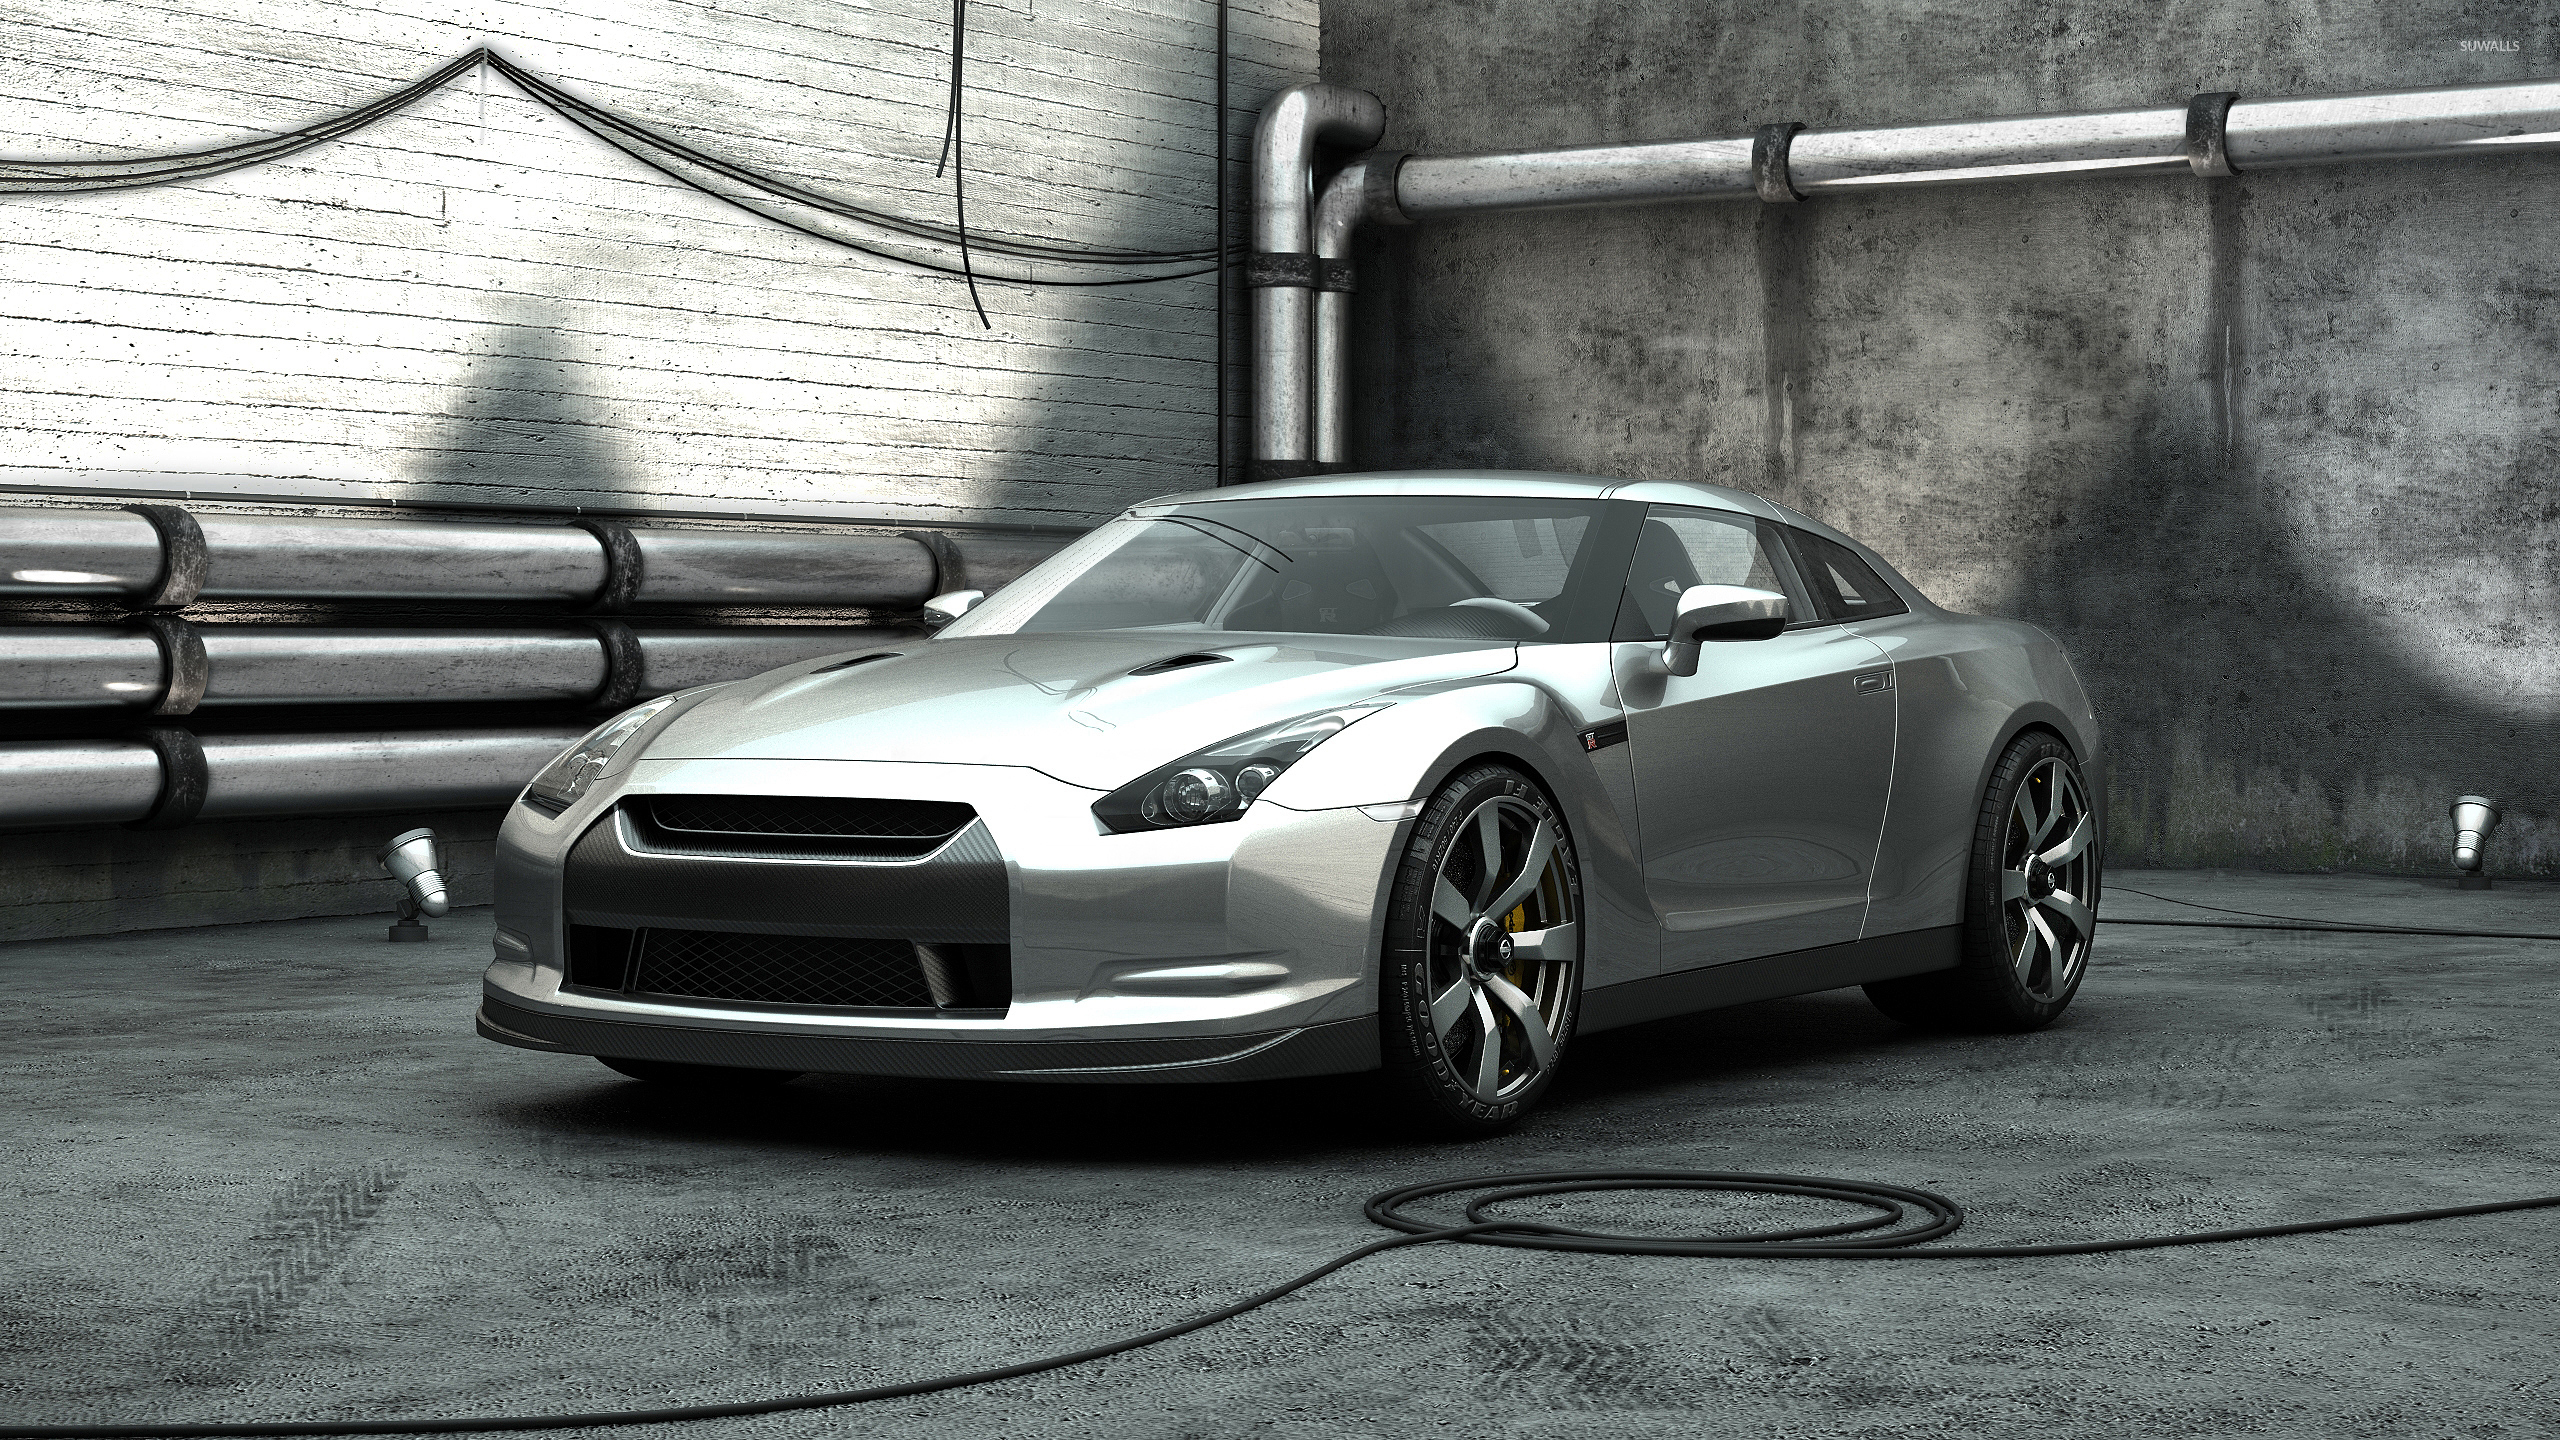 Elegant Silver Nissan GT R Front Side View Wallpaper